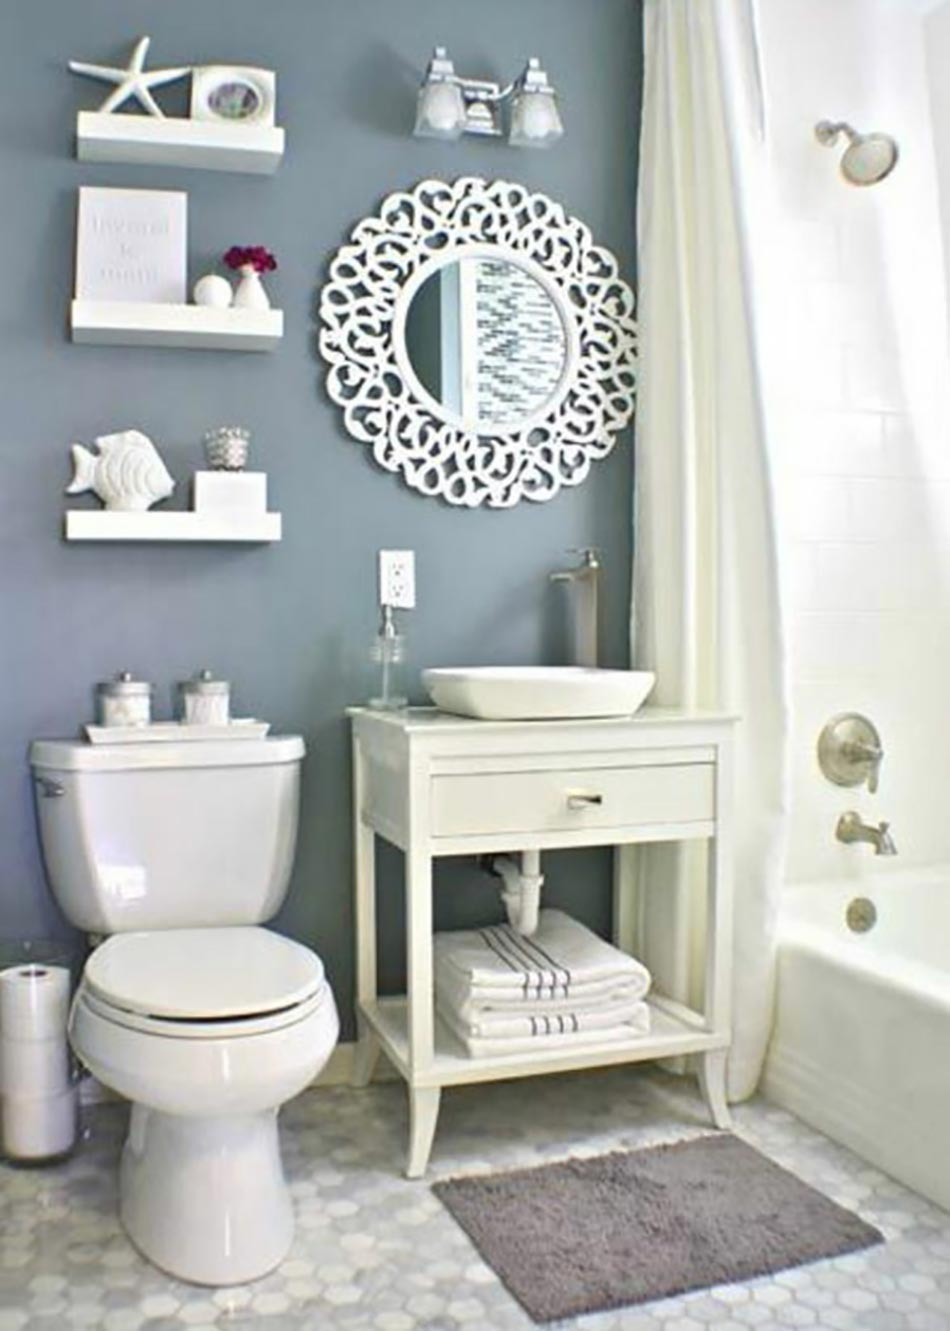 Coquillage deco salle de bain for Decoration salle de bain photos